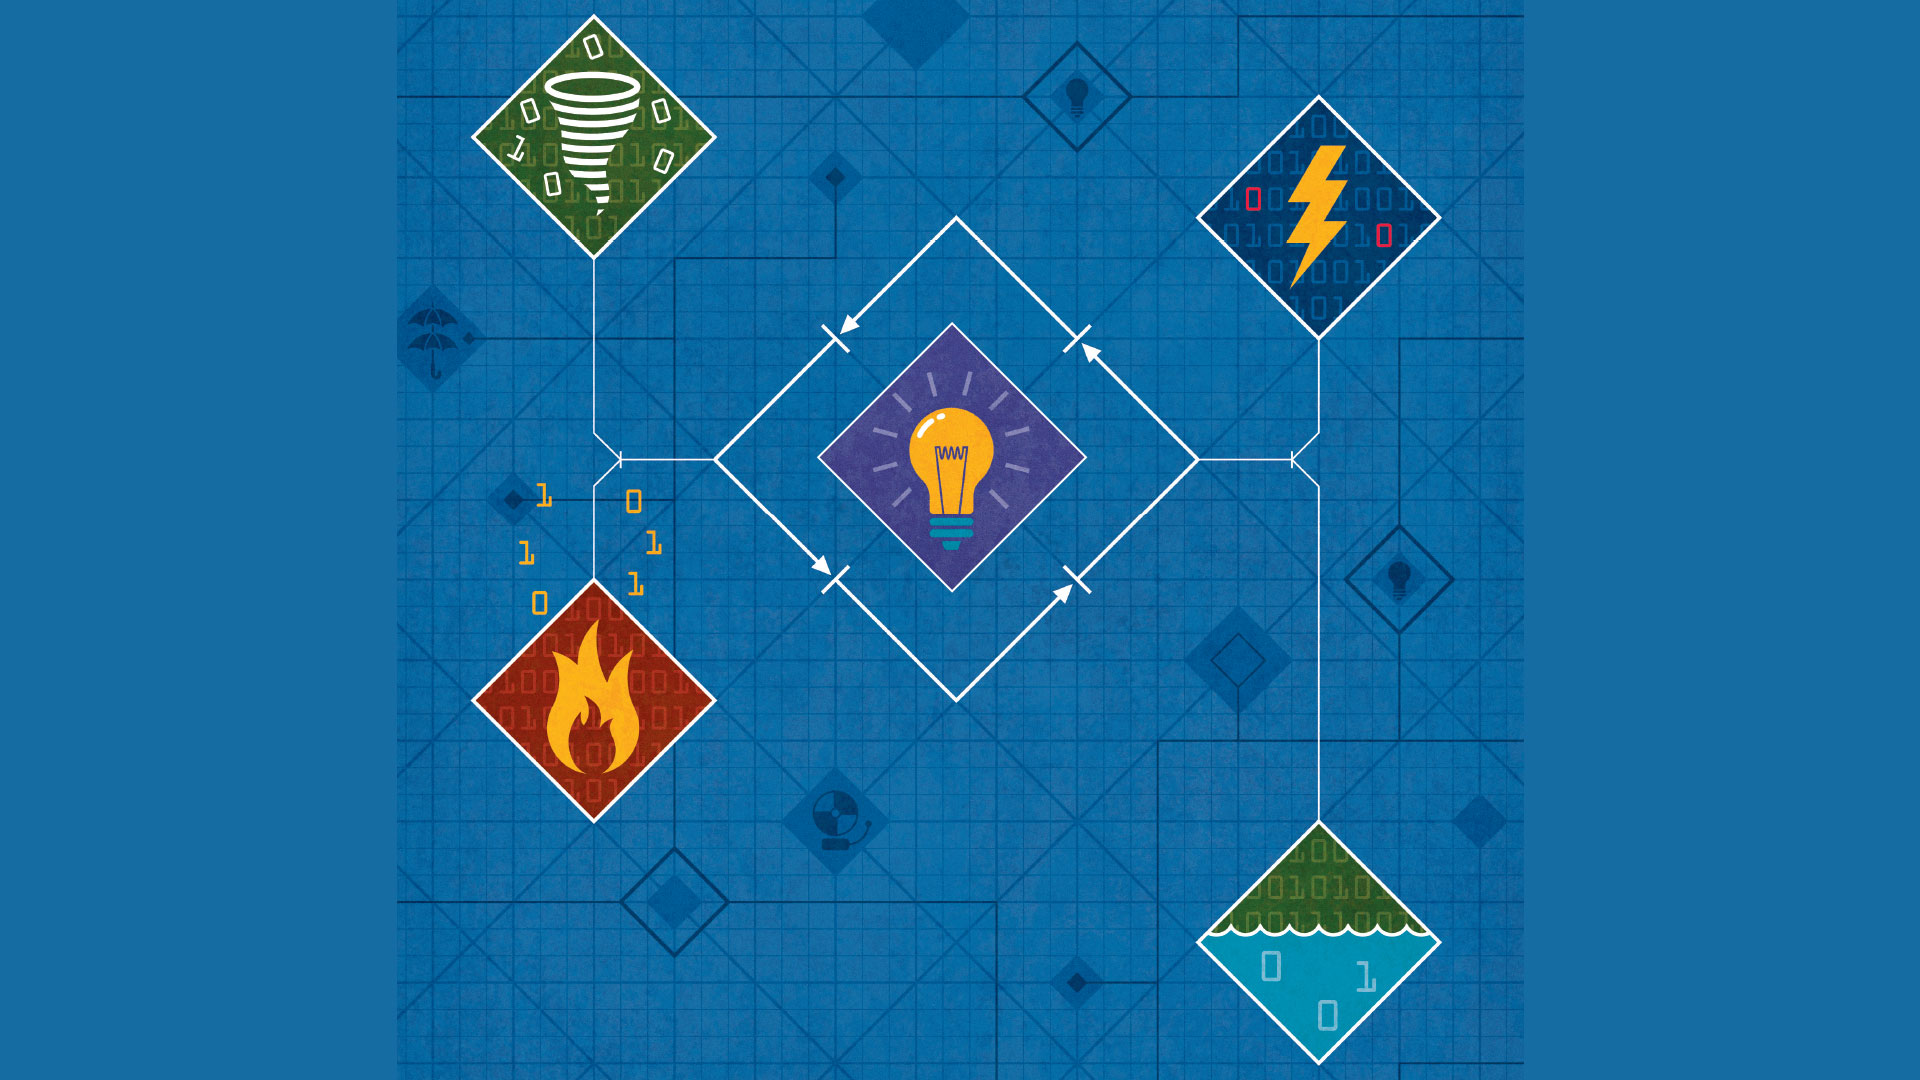 Blueprint-style illustration with four different illustrated disasters: A hurricane, fire, water and lightning